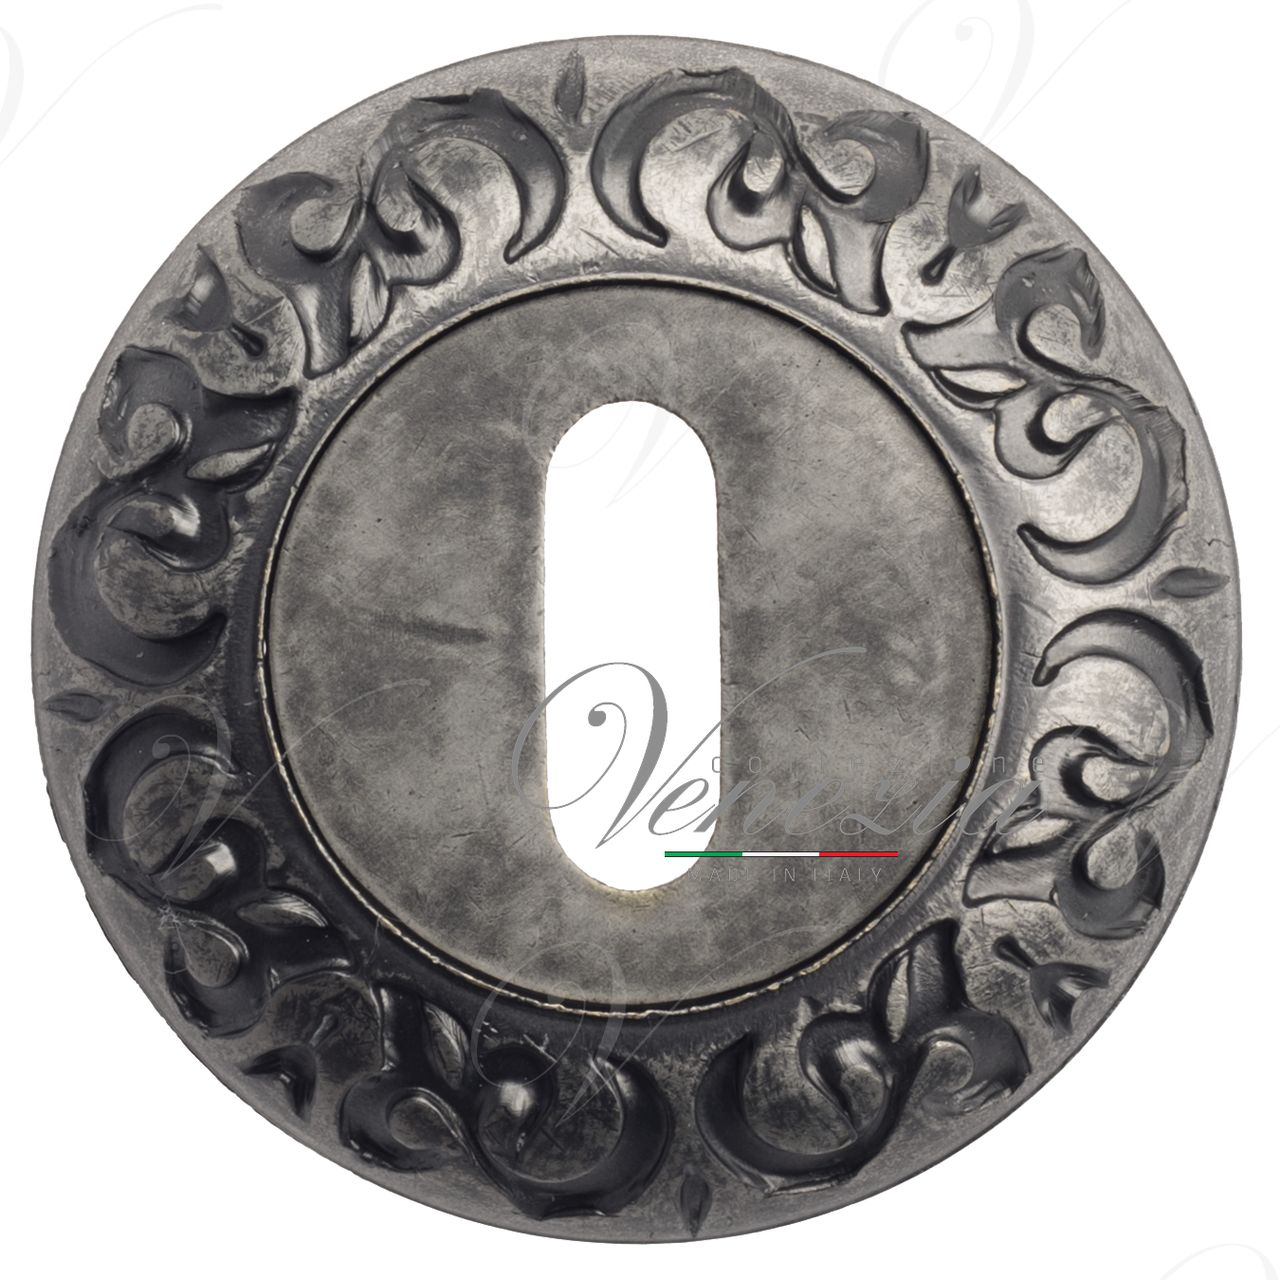 Keyhole Escutcheon Venezia KEY-1 D4 Antique Silver